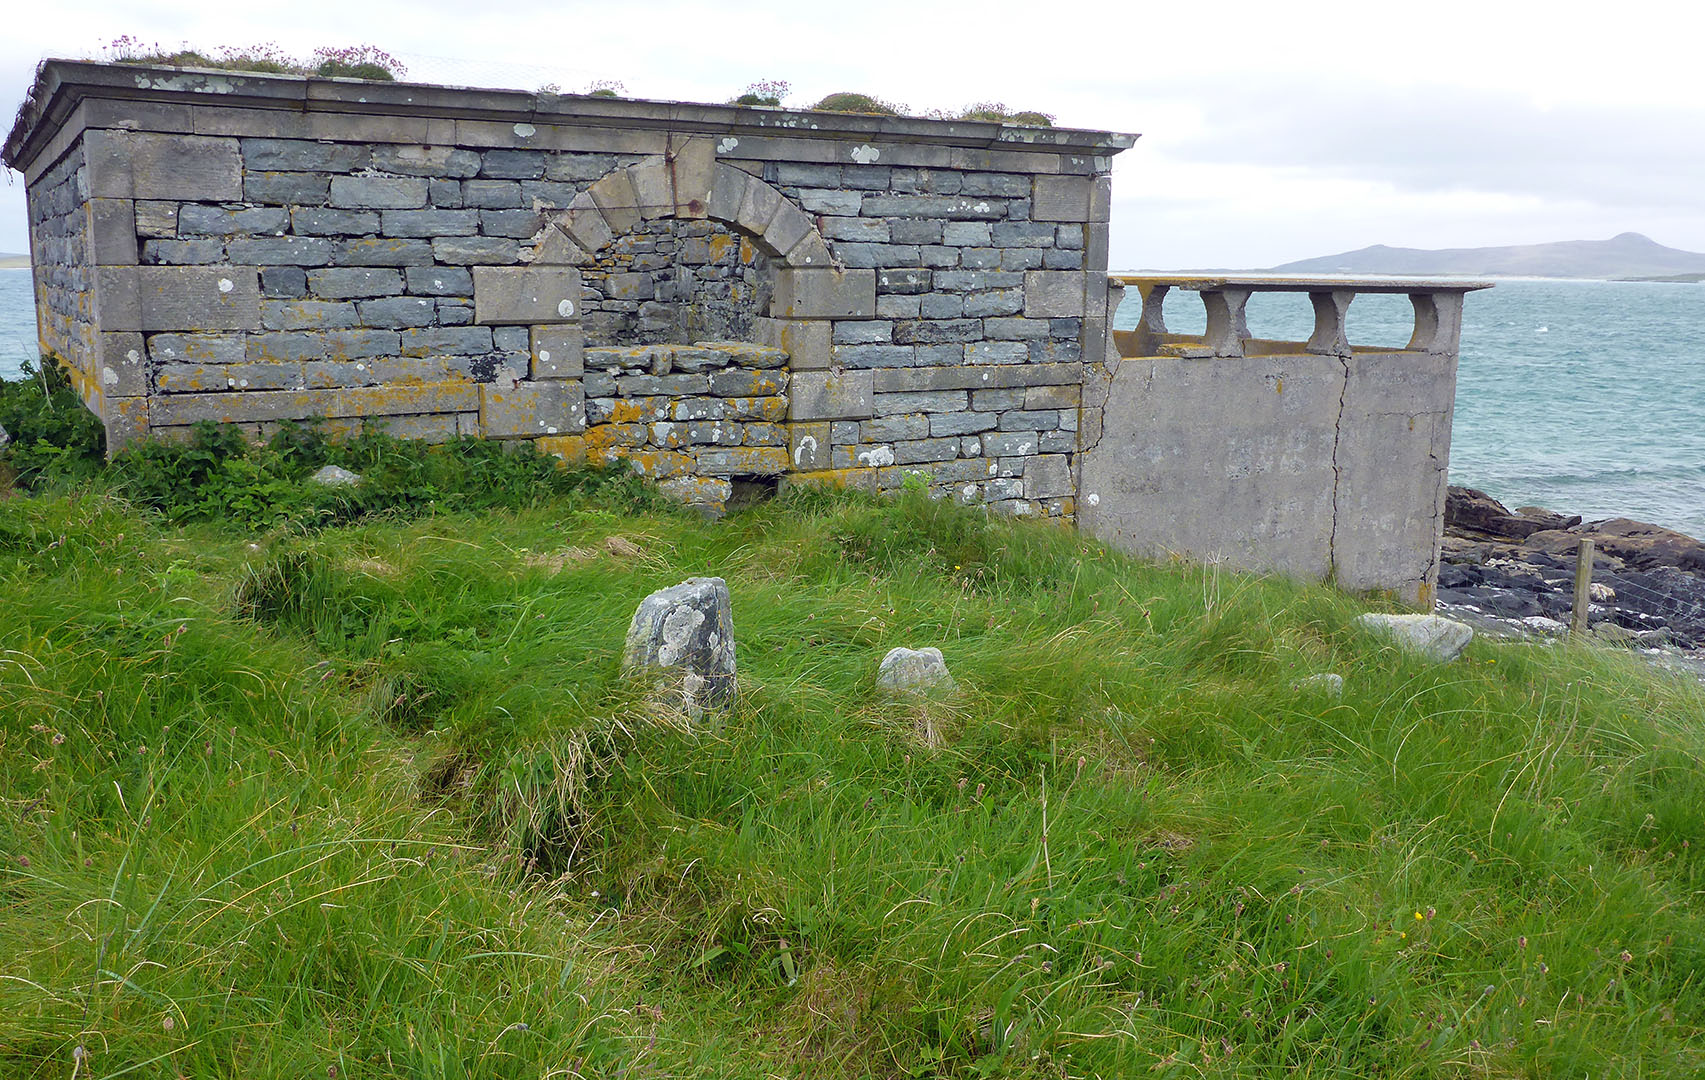 59 Cemetery, top of Udal peninsula